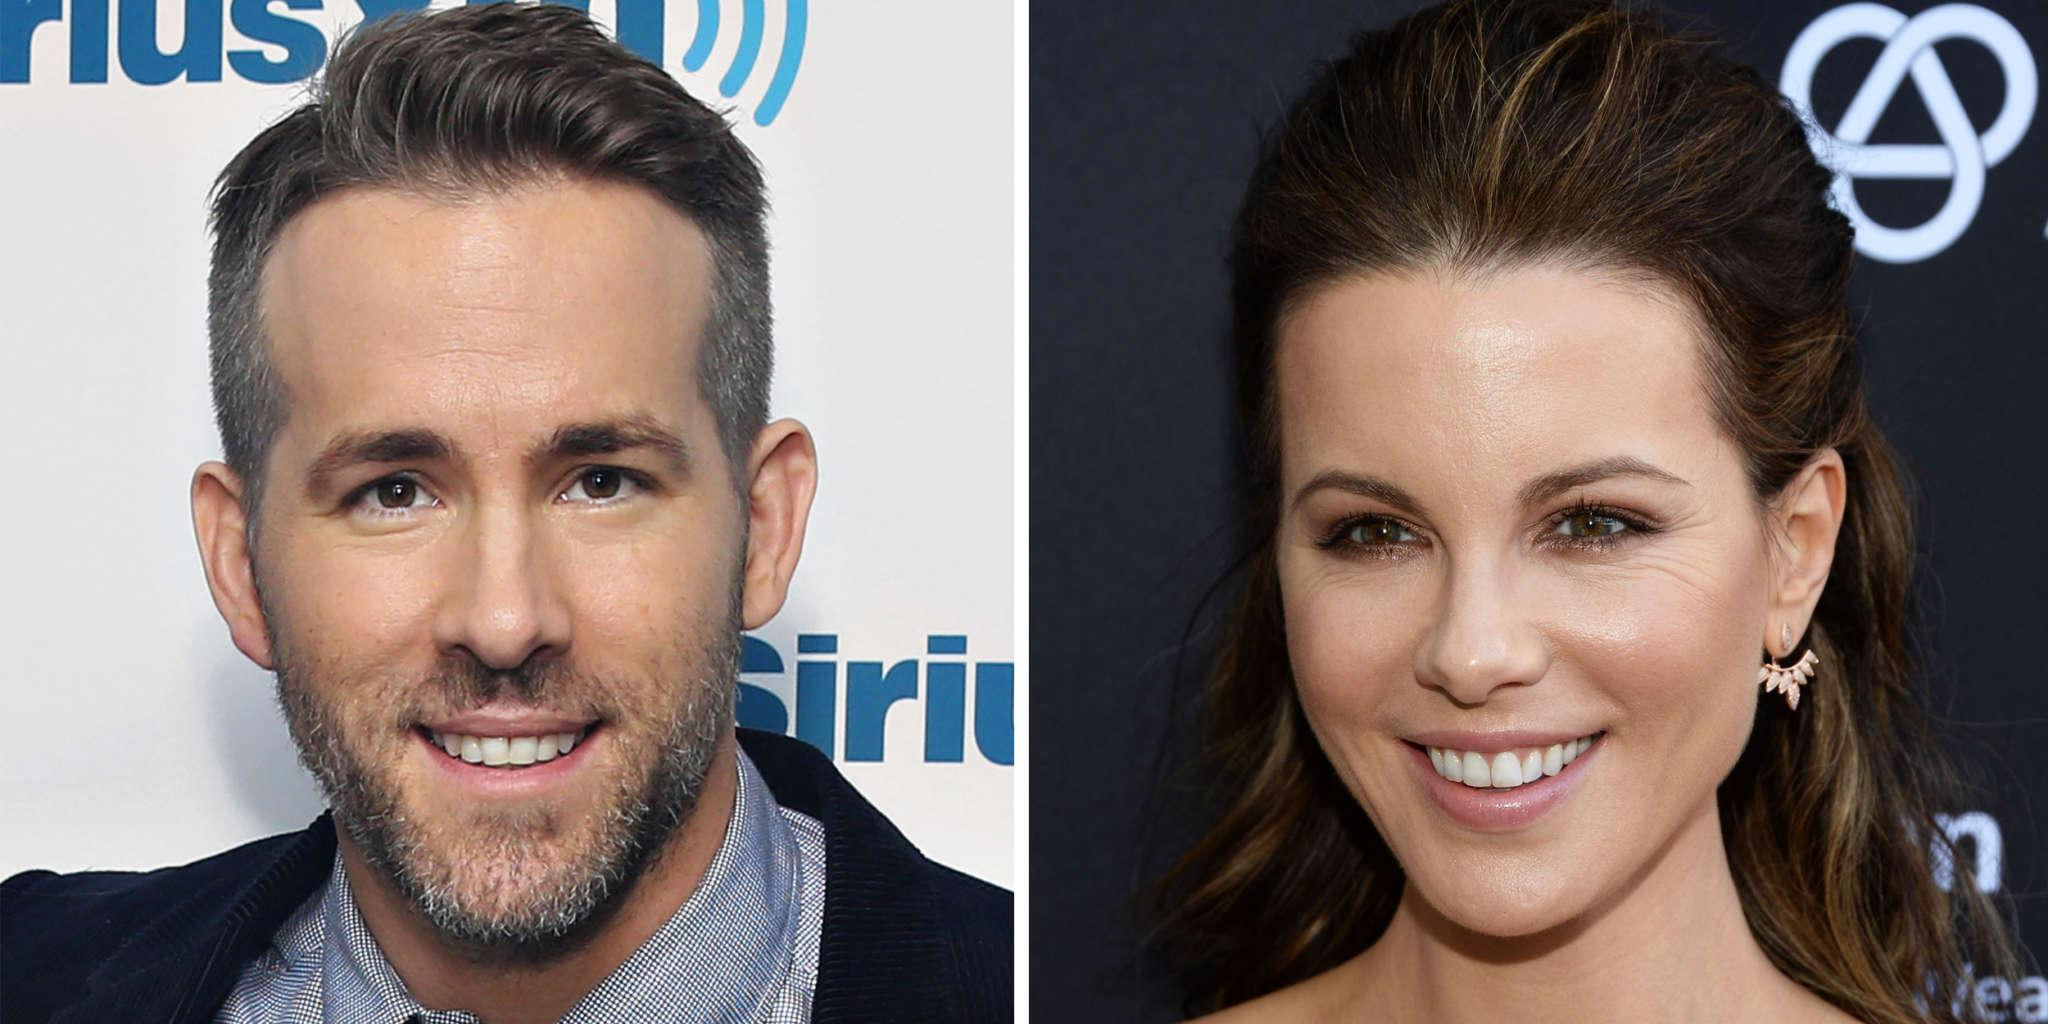 Kate Beckinsale Thinks She And Ryan Reynolds Look Like They Could Be Twins!